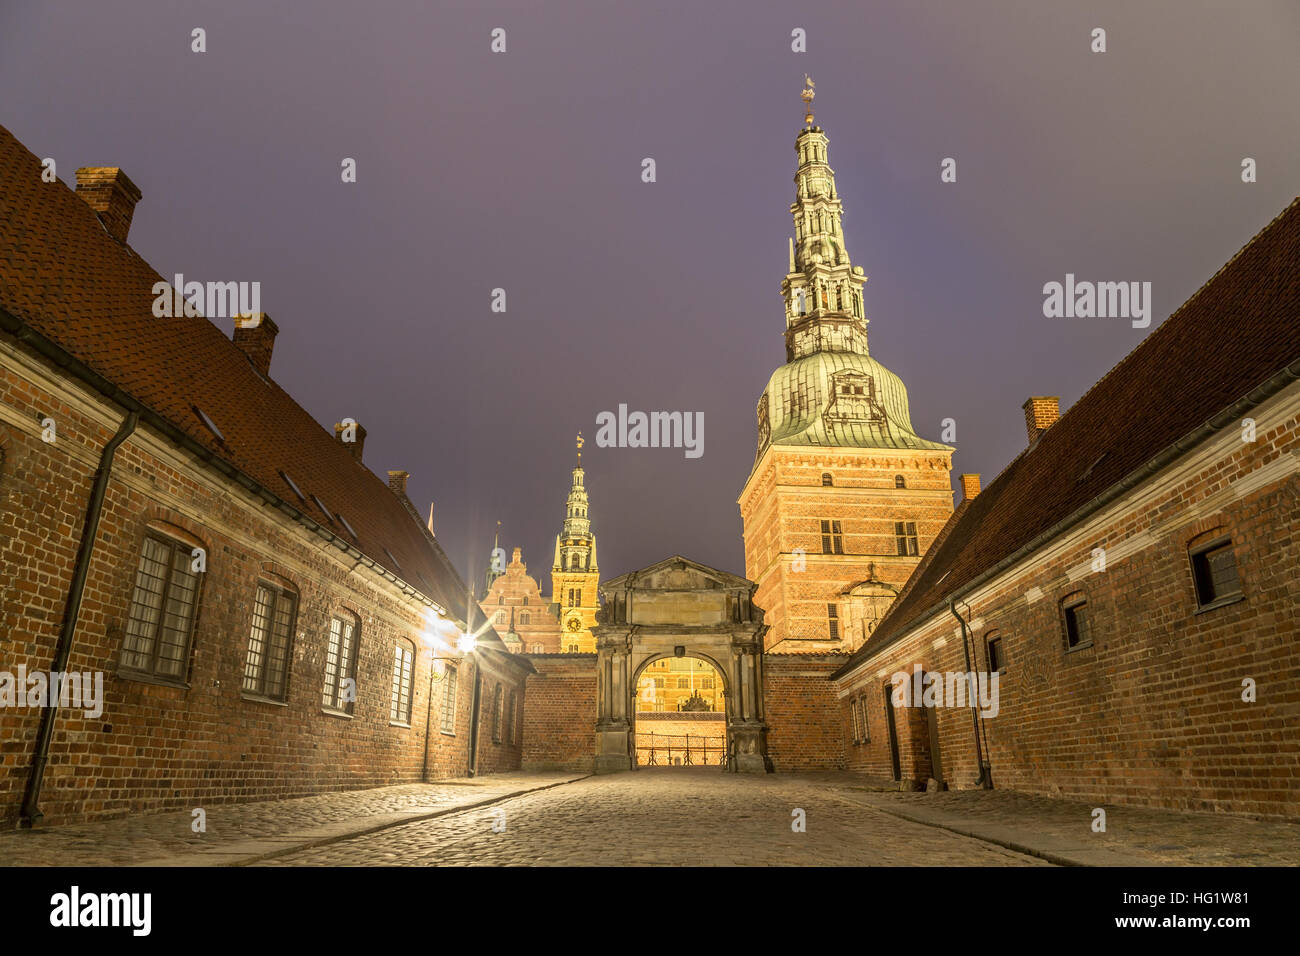 Hillerod, Denmark - December 29, 2016: View of the illuminated entrance gate to Frederiksborg Palace - Stock Image